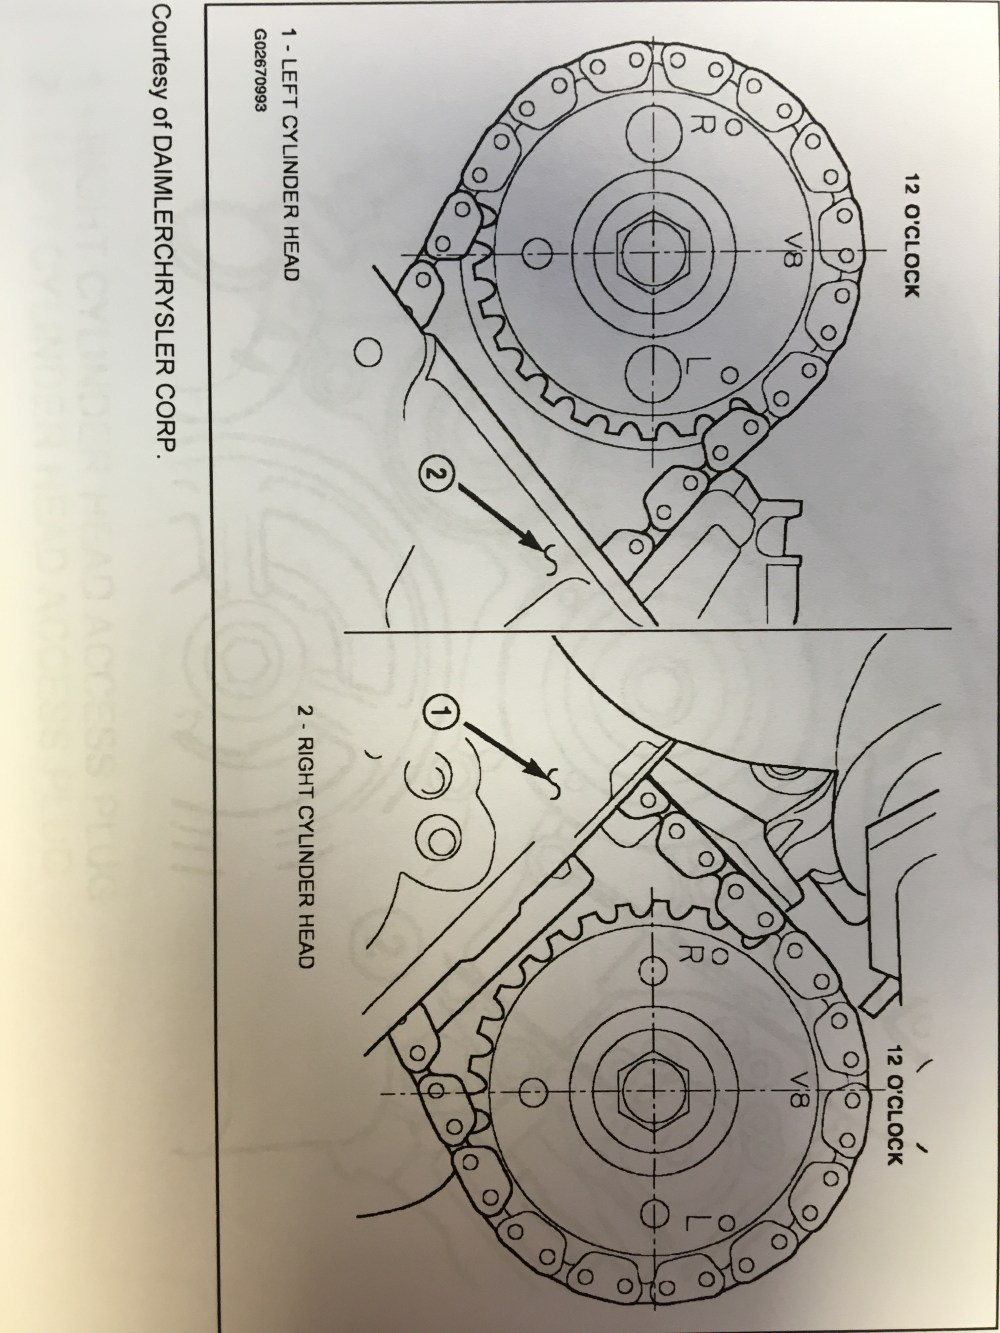 medium resolution of remove the crankshaft damper bolt usually have to slightly readjust crankshaft pulley afterward and crankshaft damper using a damper puller and then